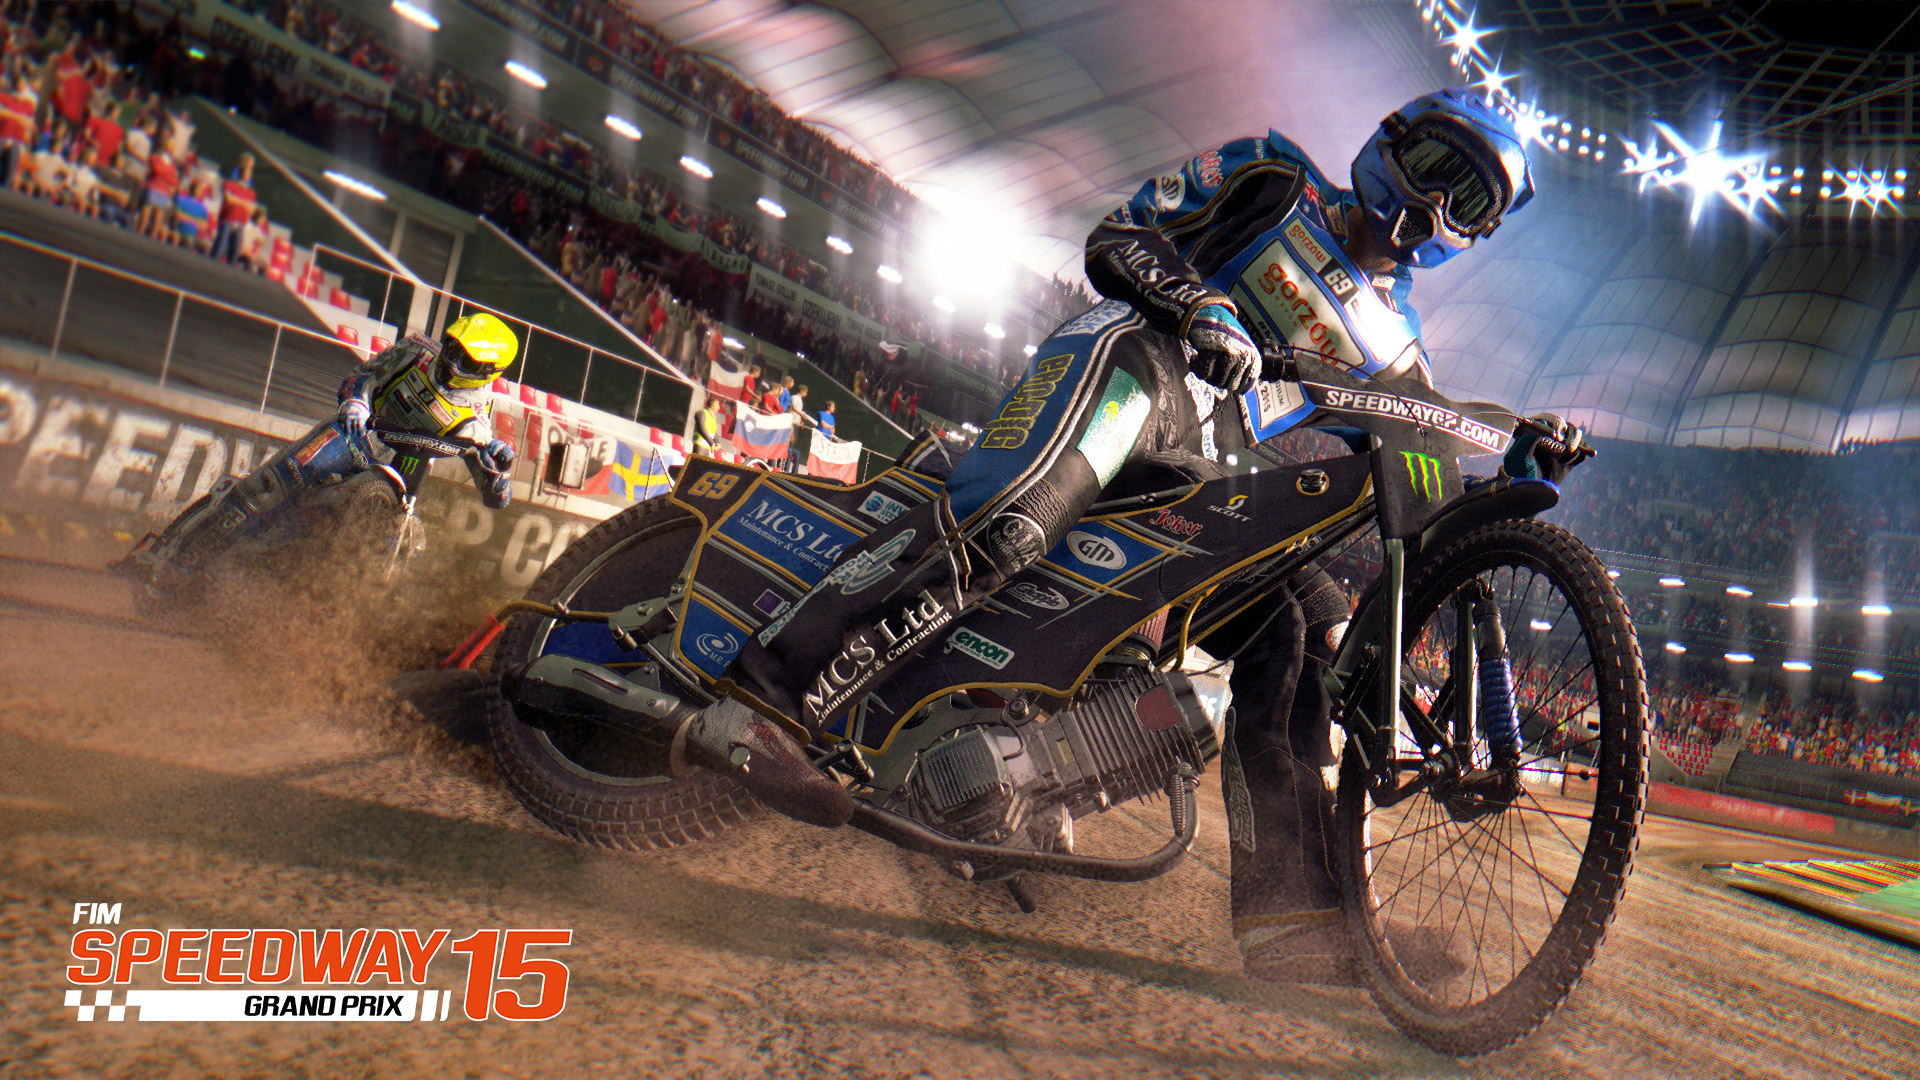 Speed Way Fim Speedway Grand Prix 15